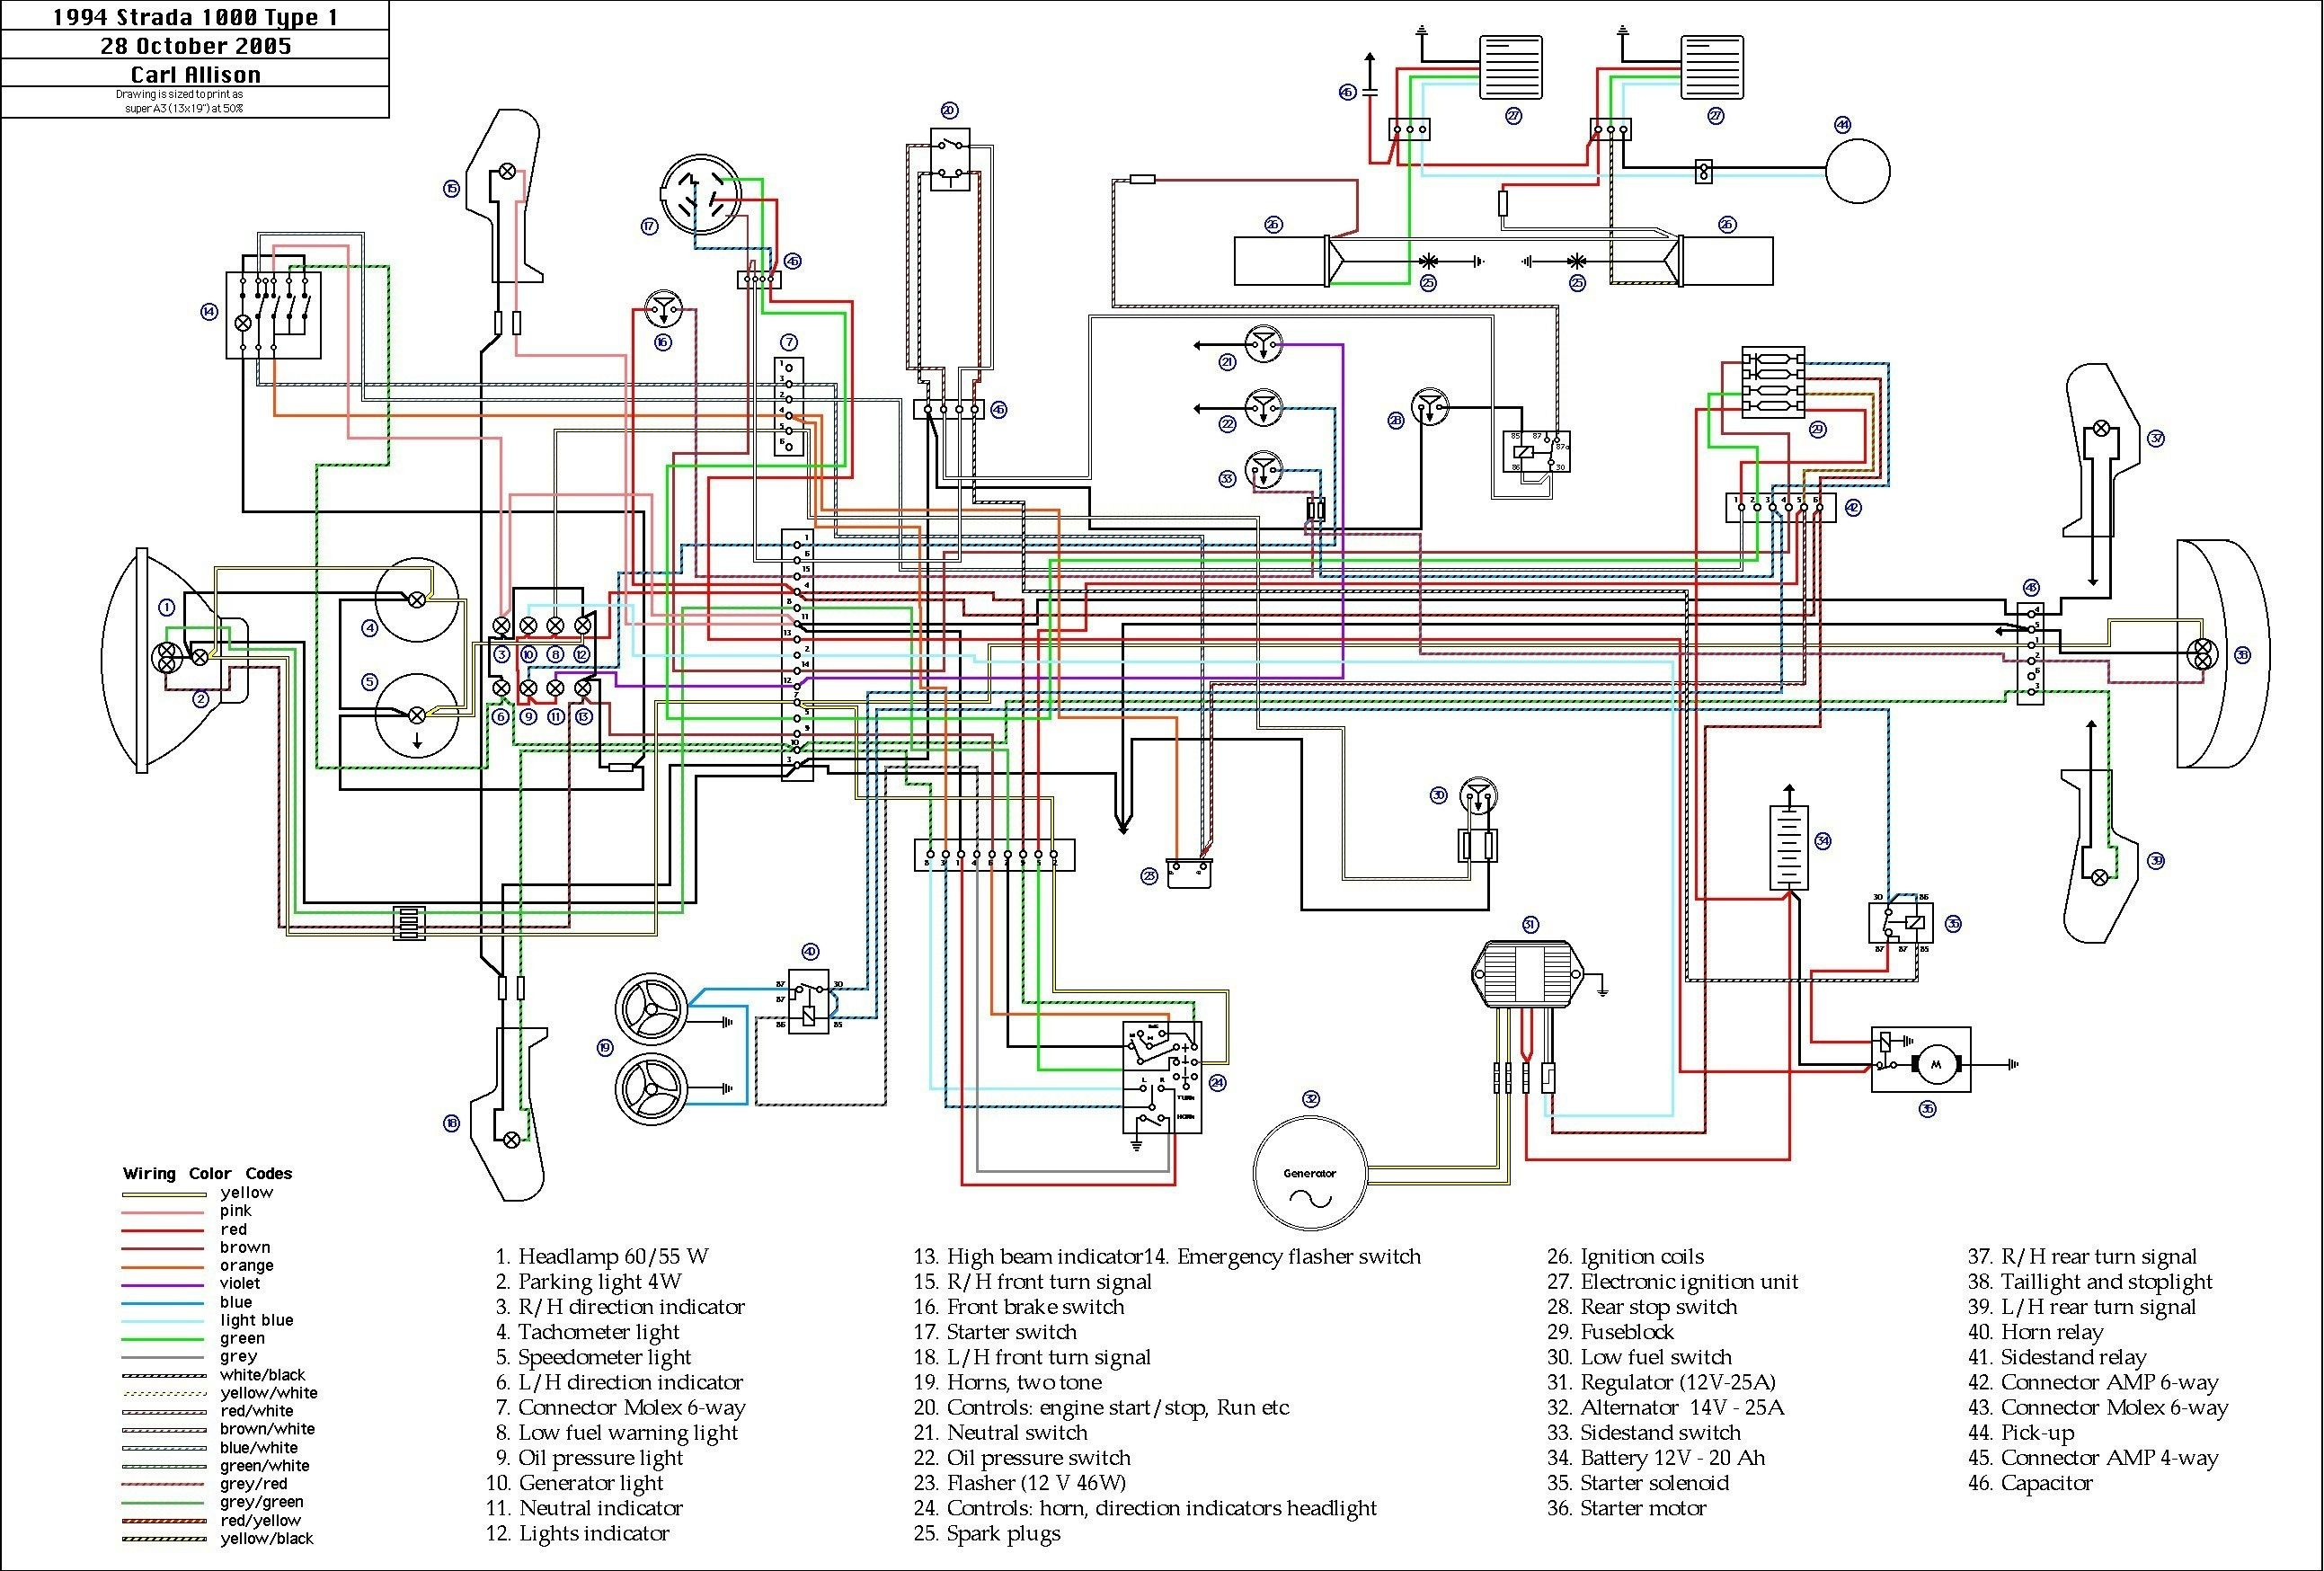 [QNCB_7524]  New Bmw E46 Cluster Wiring Diagram | Opel corsa, Trailer wiring diagram,  Opel | 2004 Jeep Grand Cherokee Tail Light Wiring Diagram |  | Pinterest